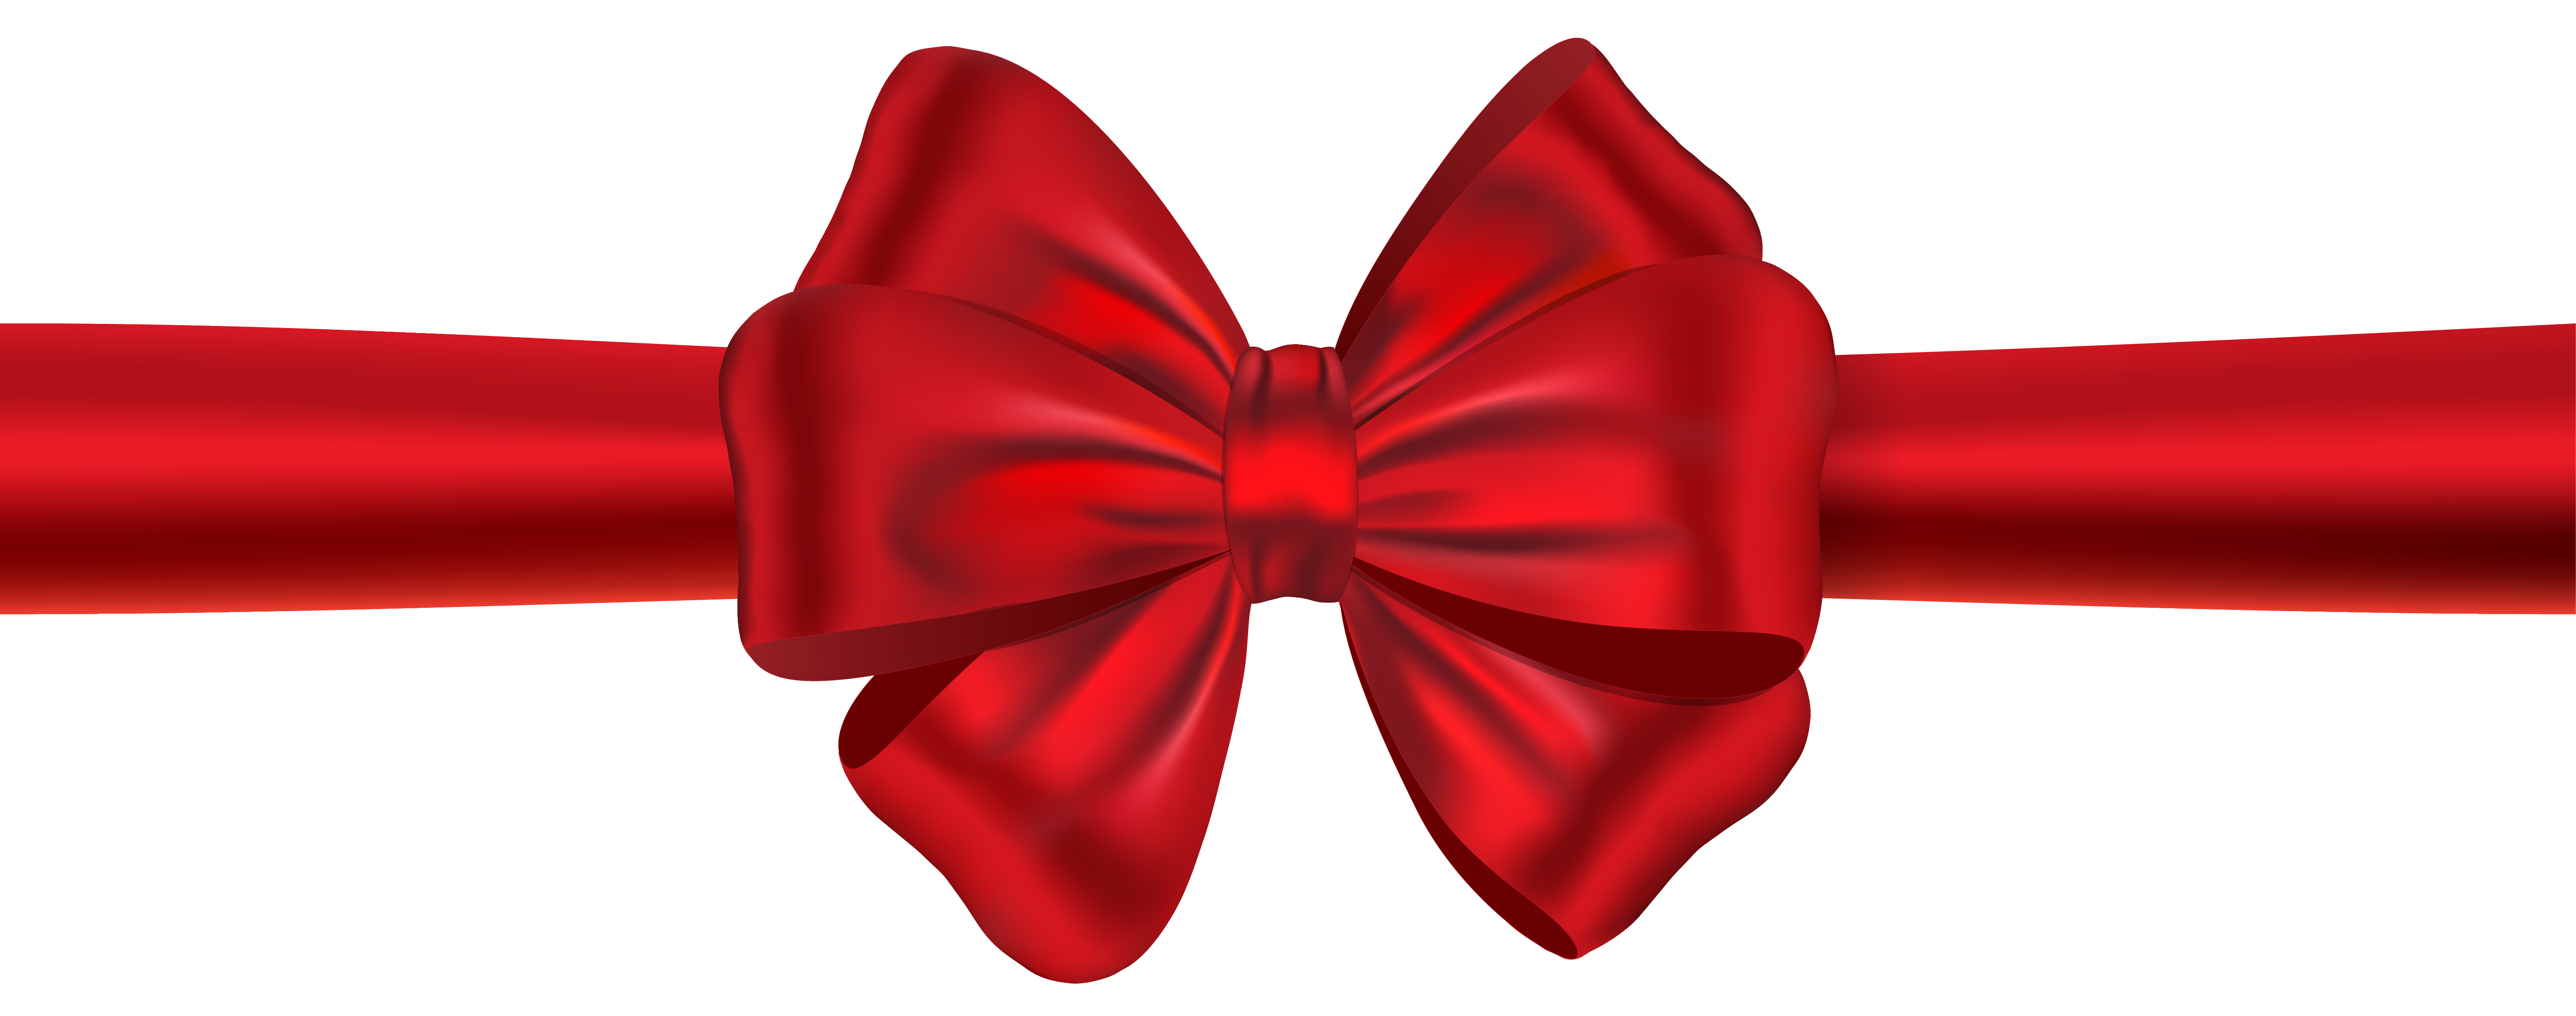 Free Red Ribbon Transparent, Download Free Clip Art, Free.